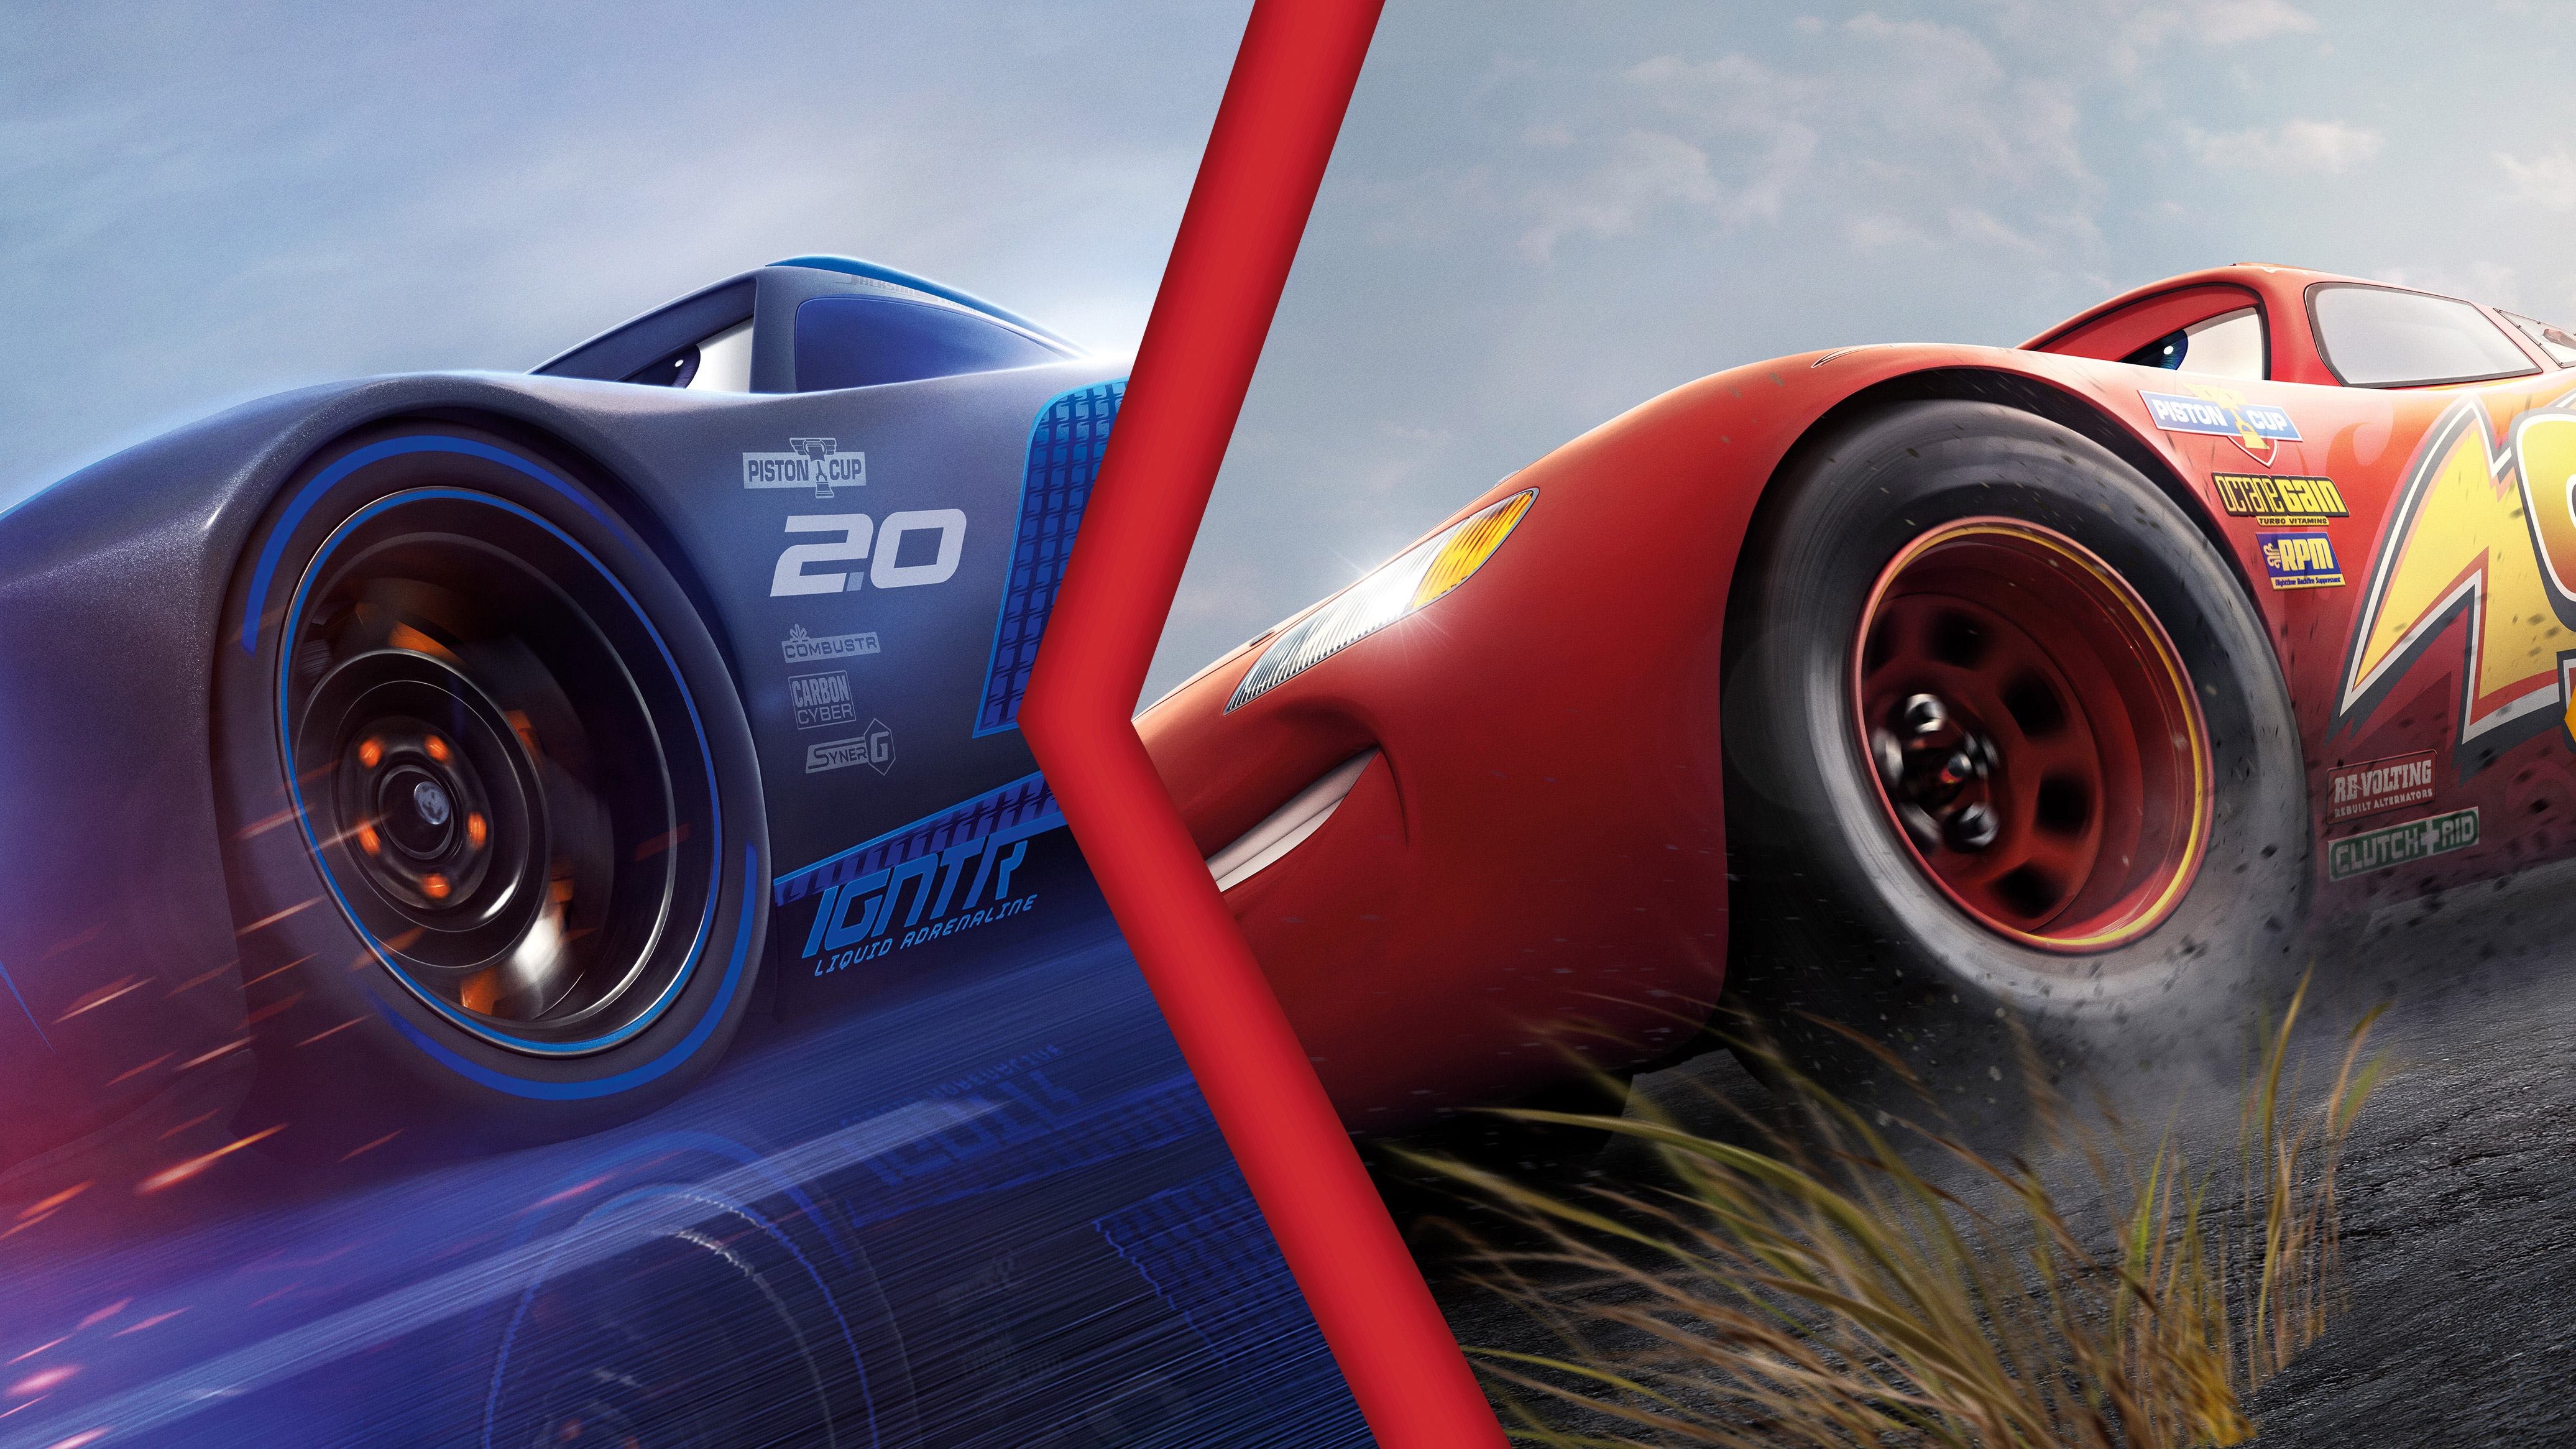 Lightning mcqueen vs jackson storm cars 3 4k hd movies - Cars 3 wallpaper ...